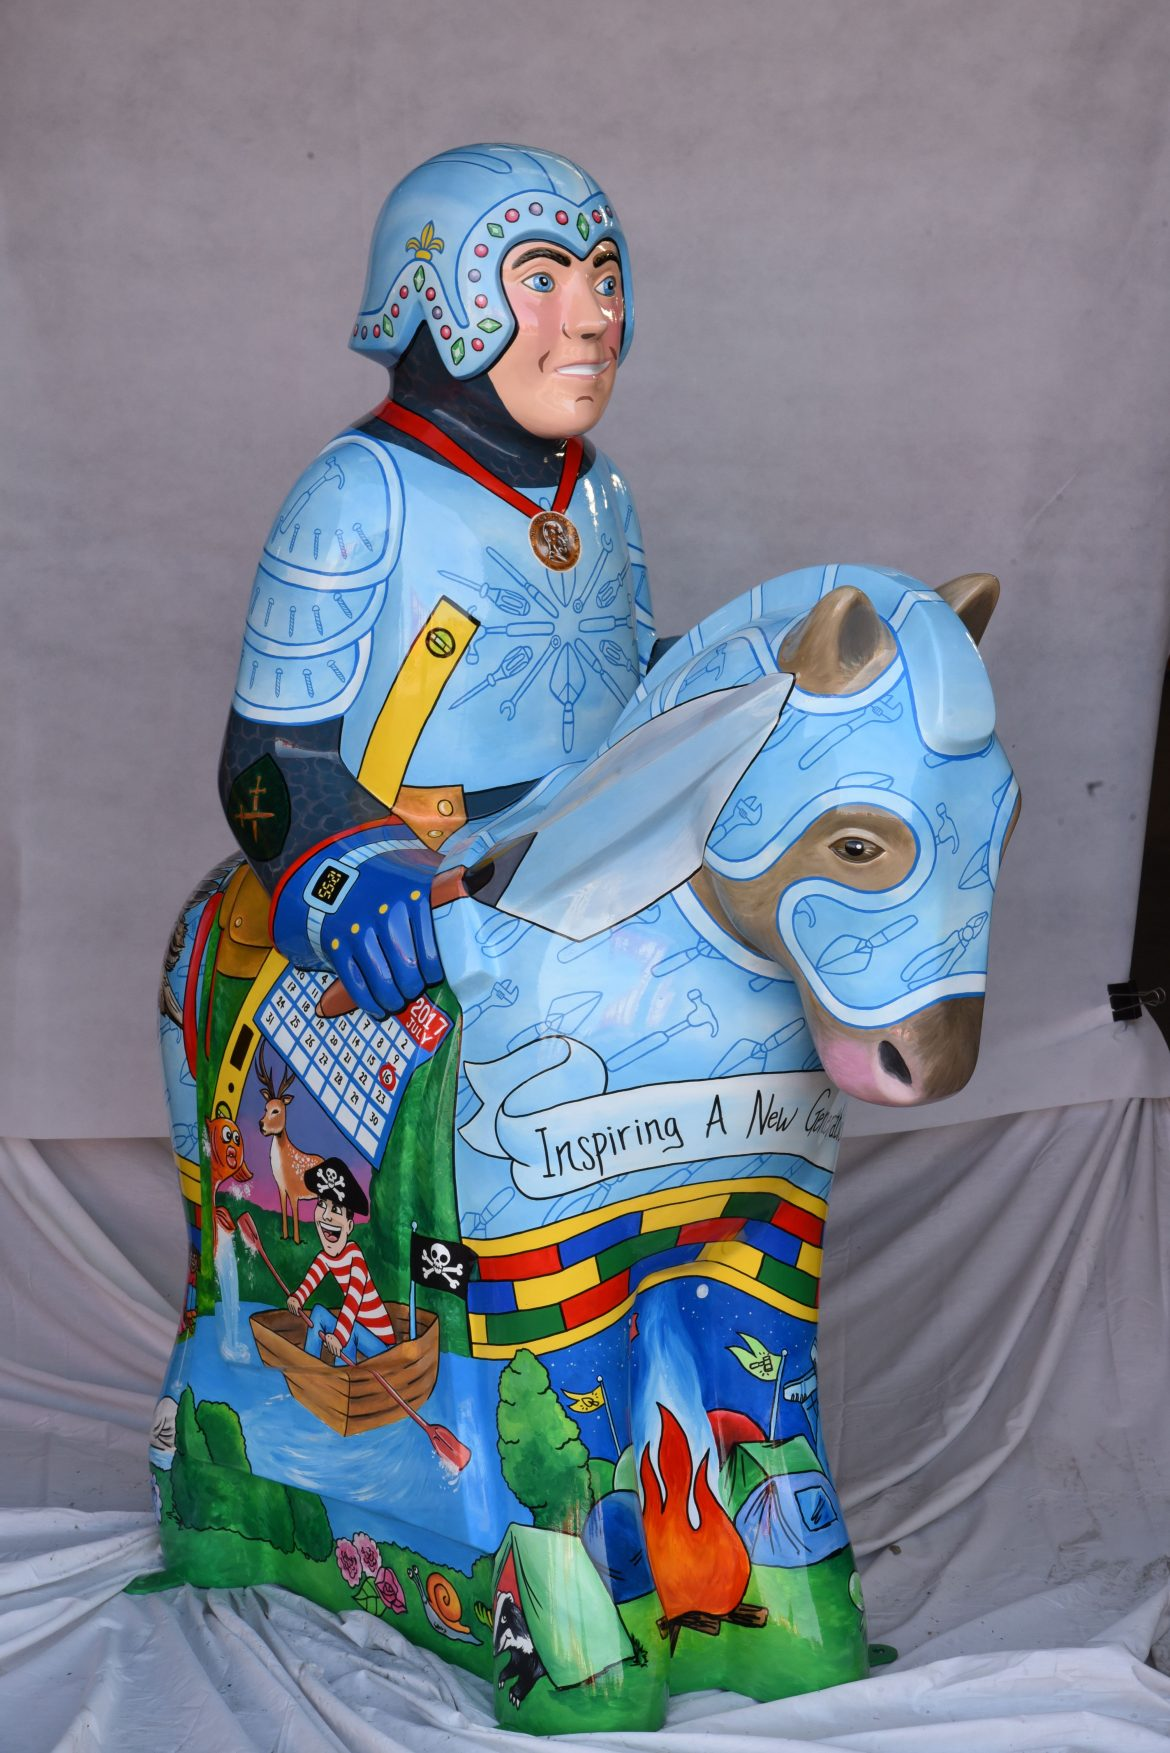 Lincoln Knights' Trail - Gelder Knight